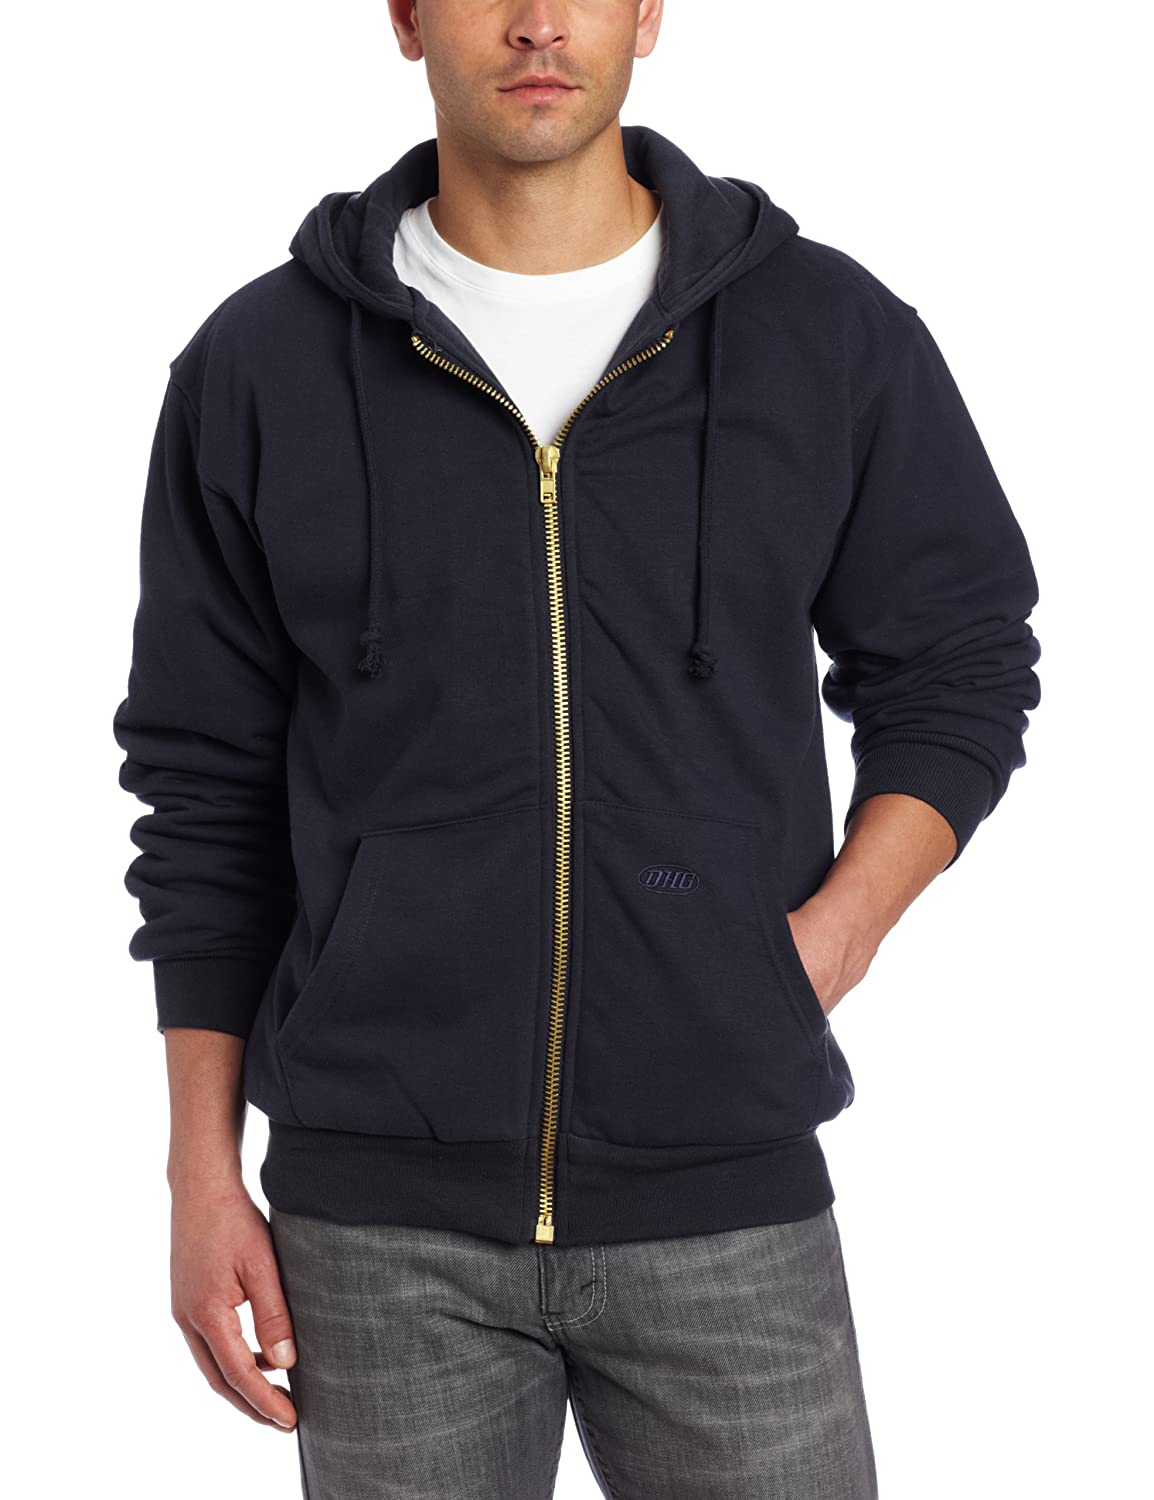 Dutch Harbor Gear Herren Astoria Full Zip Hoodie